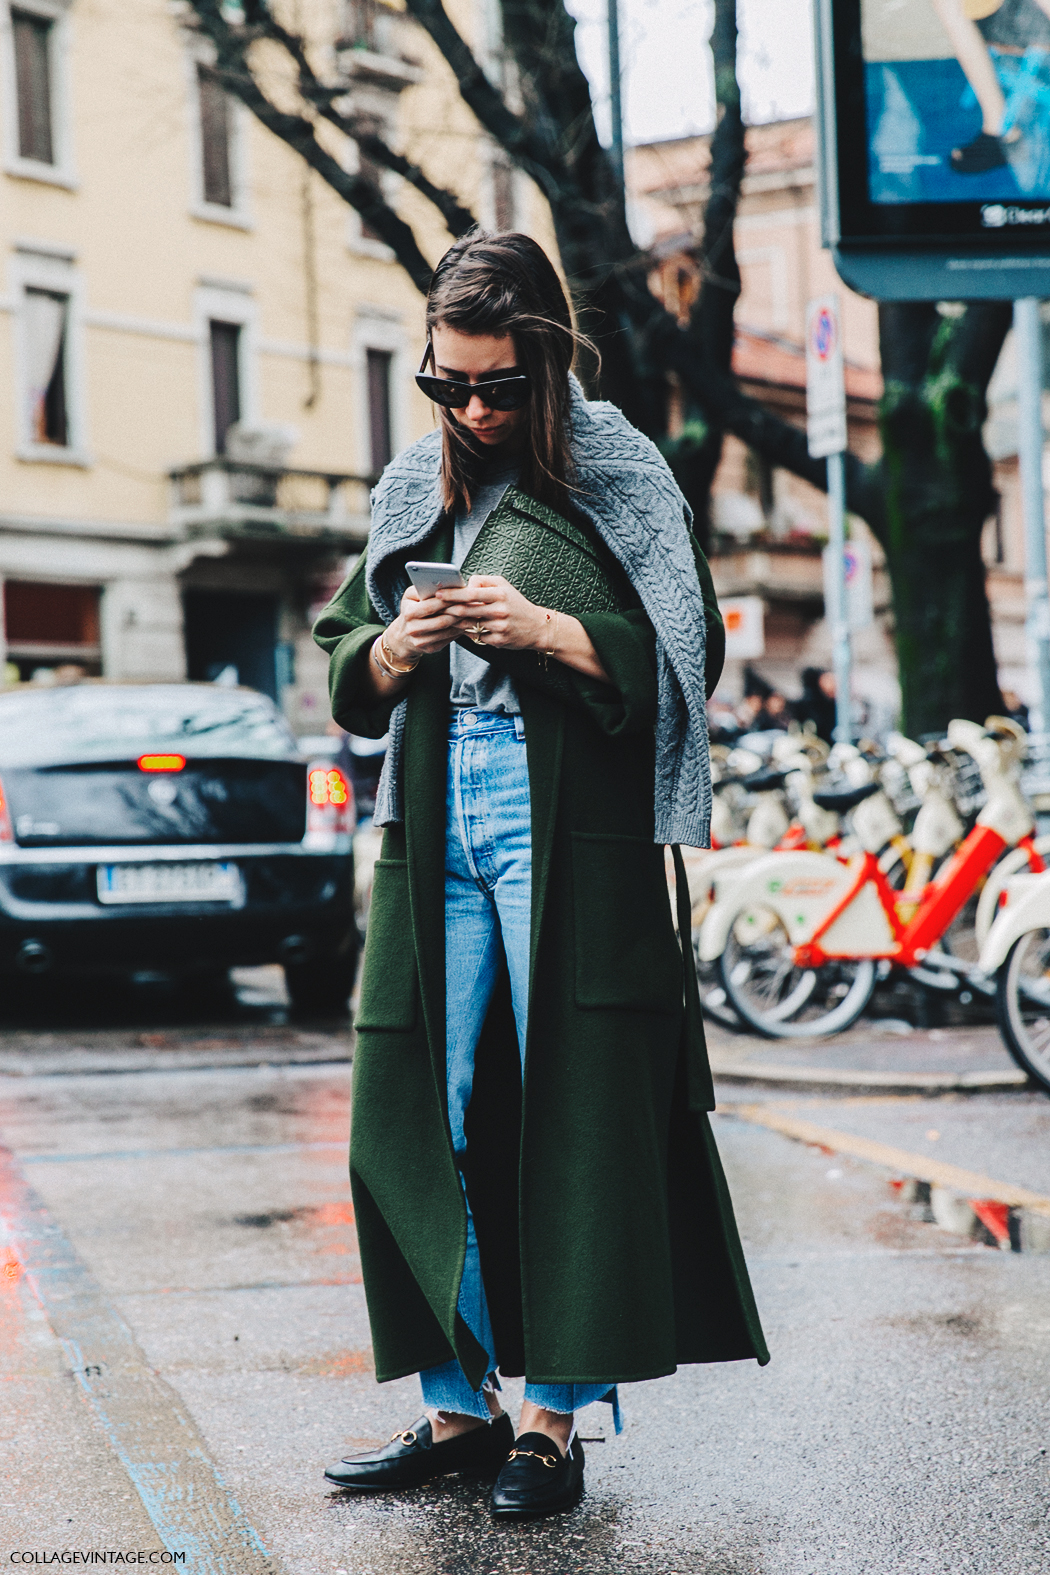 Street Style From Fashion Week 2016 15 Images Of Inspiration Cool Chic Style Fashion